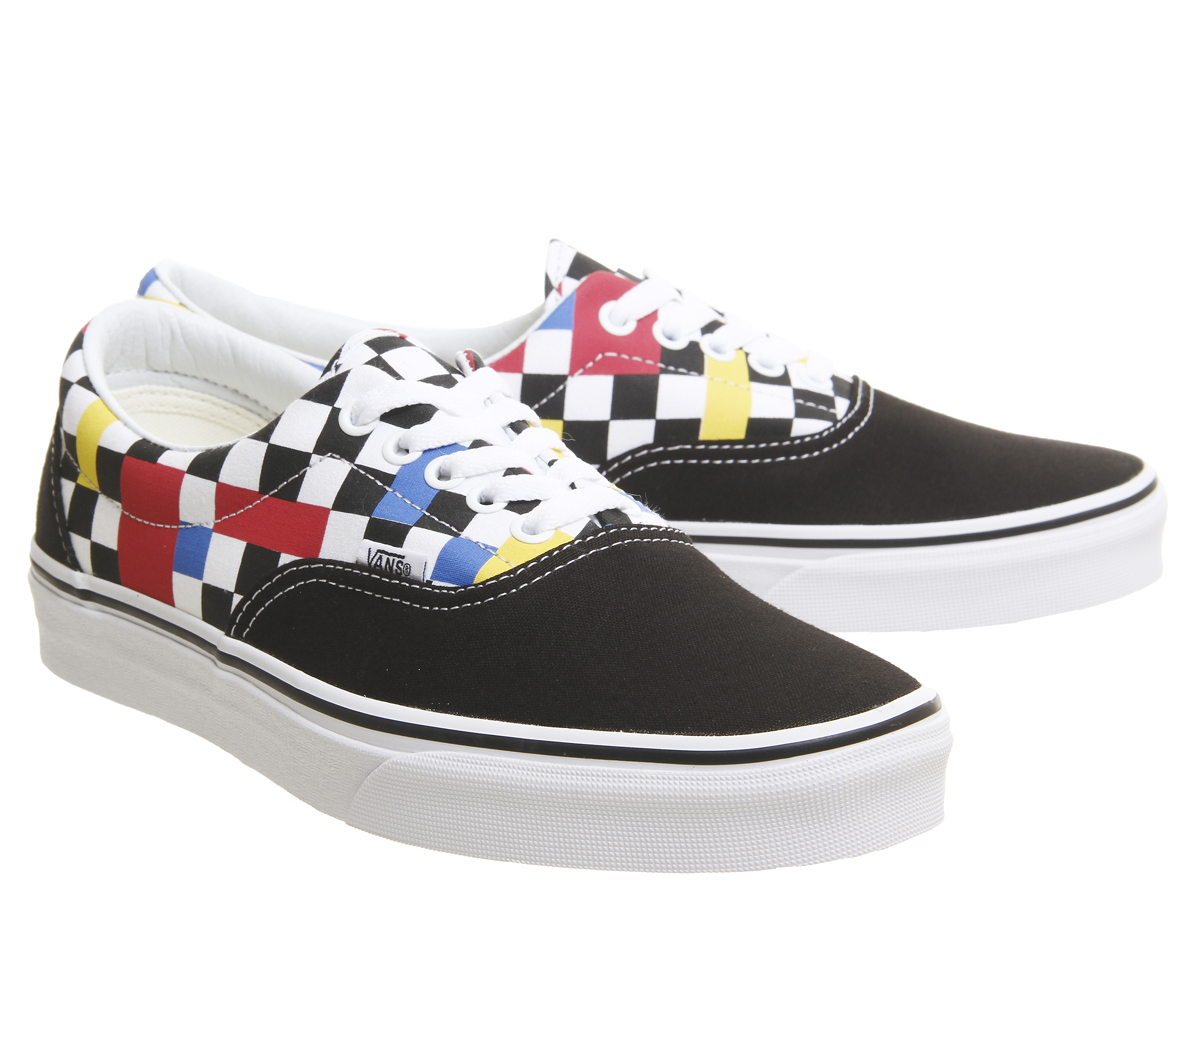 666e772893 Mens Vans Era Trainers Geometric Black Multi True White Exclusive ...